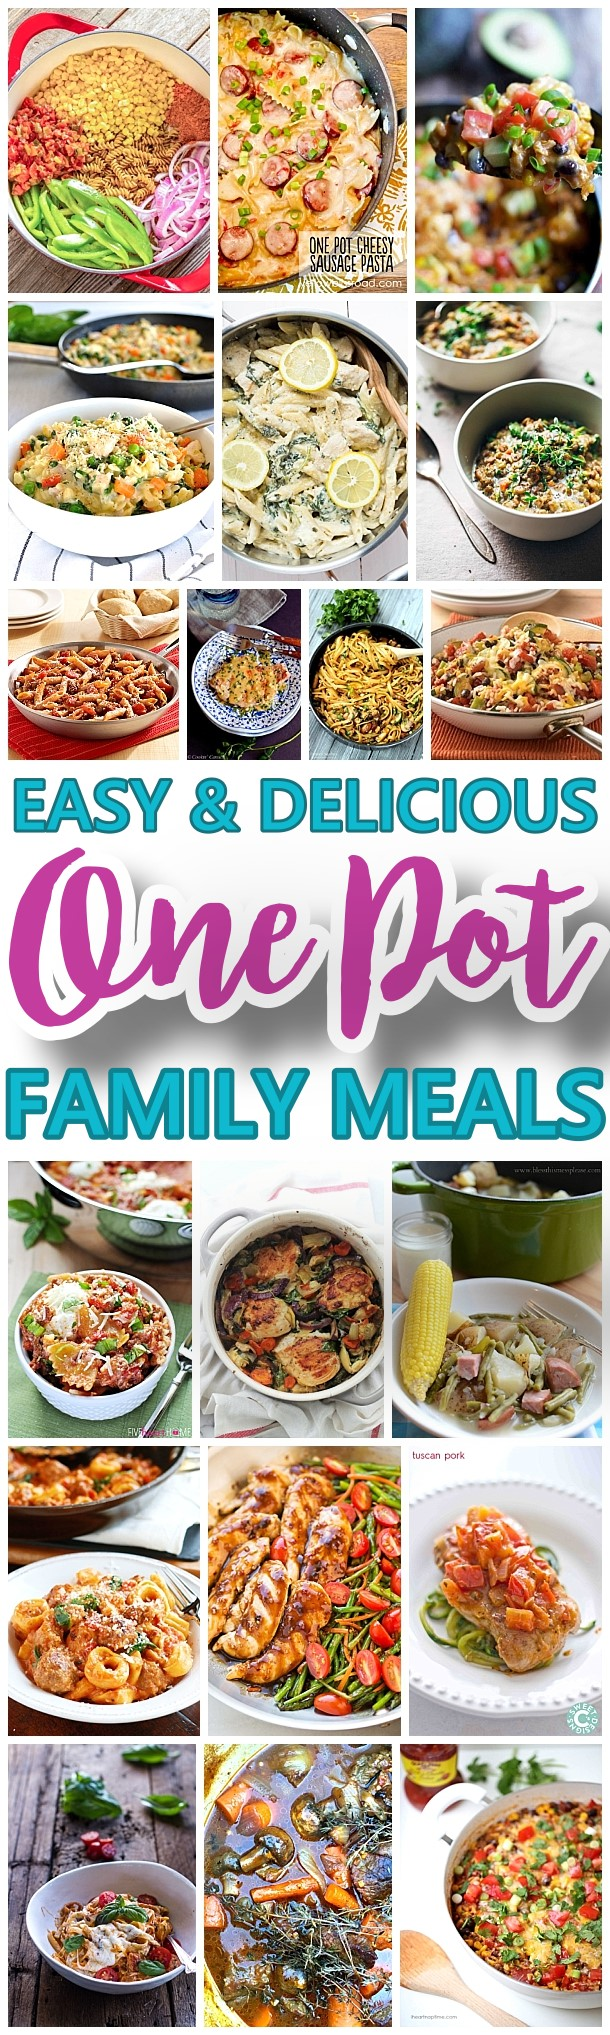 The BEST Easy and Delicious ONE POT Recipes - We've got BEEF, CHICKEN, PORK and VEGETABLE options - something for everyone! Make amazing lunch and dinner meals for your family with less cleanup! Perfect for busy weeknights or anytime you want to make a quick and hearty homemade meal recipe using just ONE pan. - Dreaming in DIY